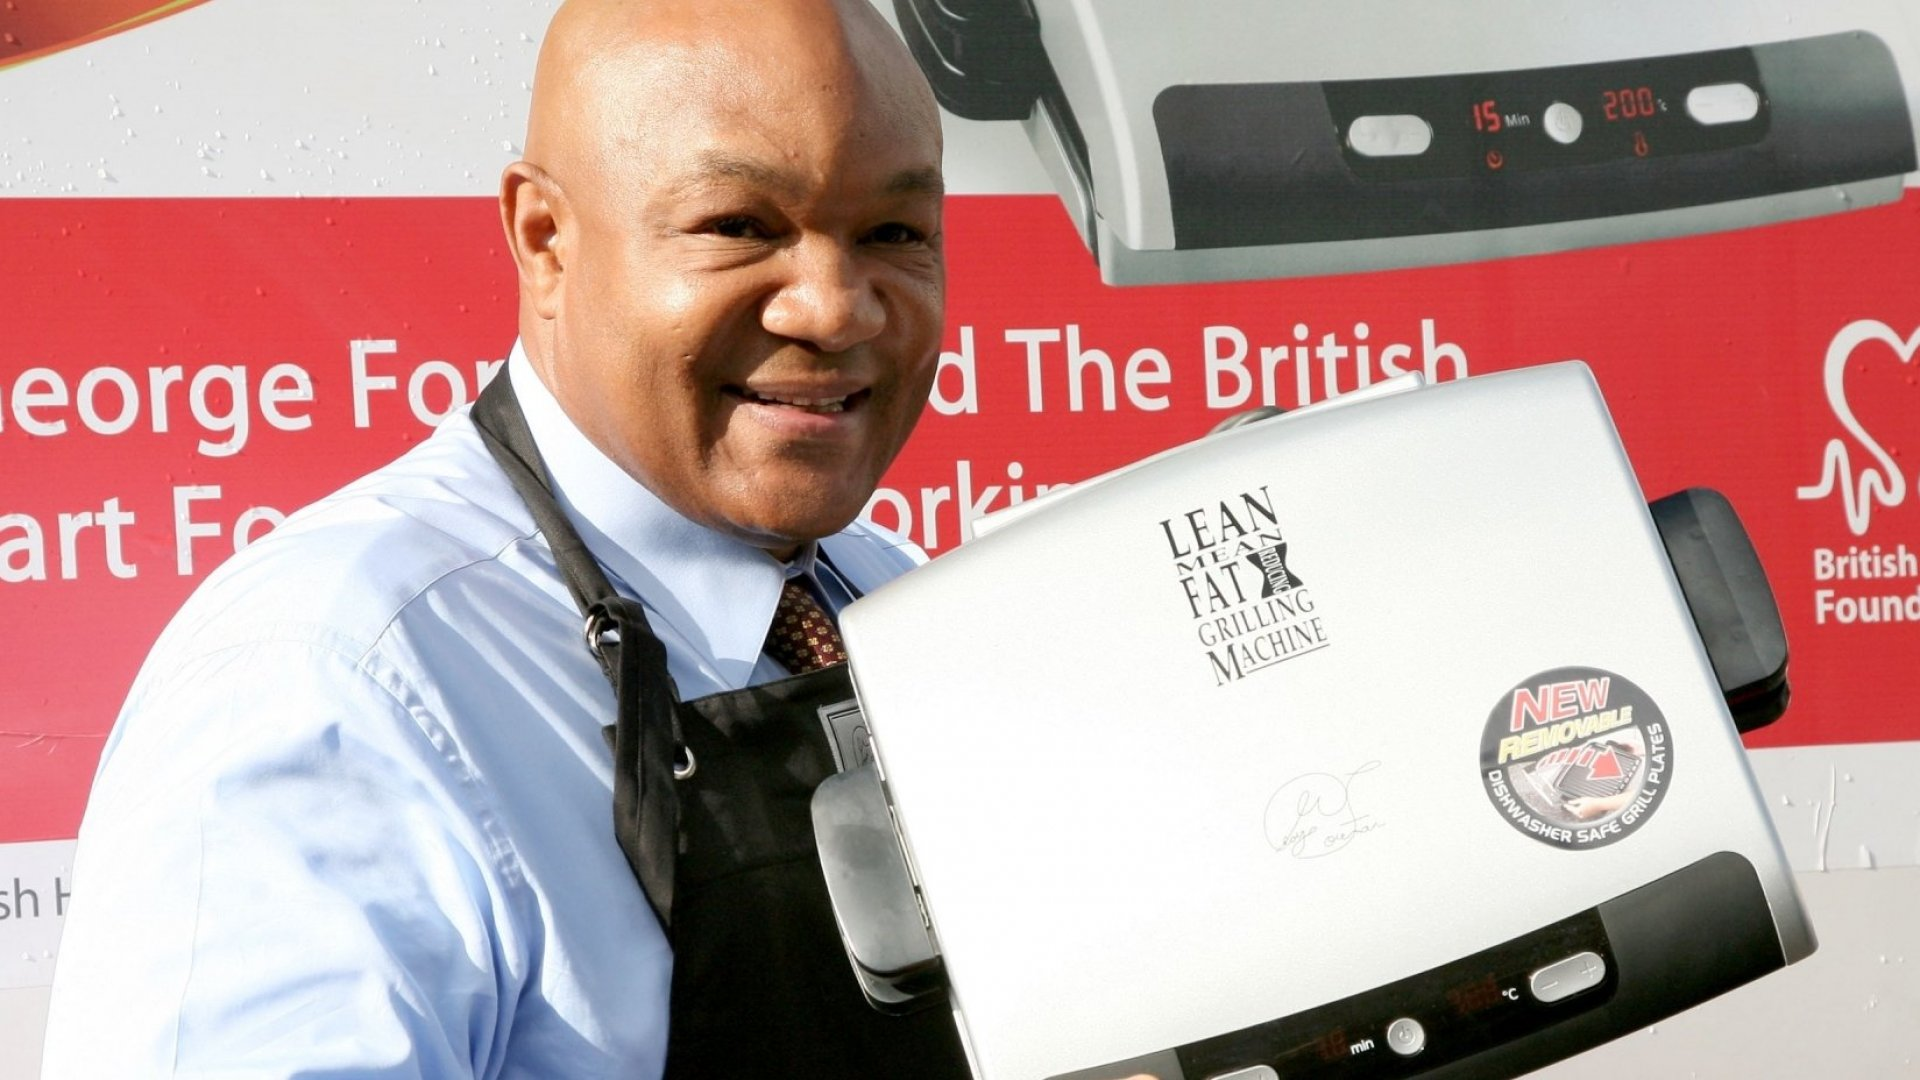 Use This Recipe to Emulate the Success of The George Foreman Grill